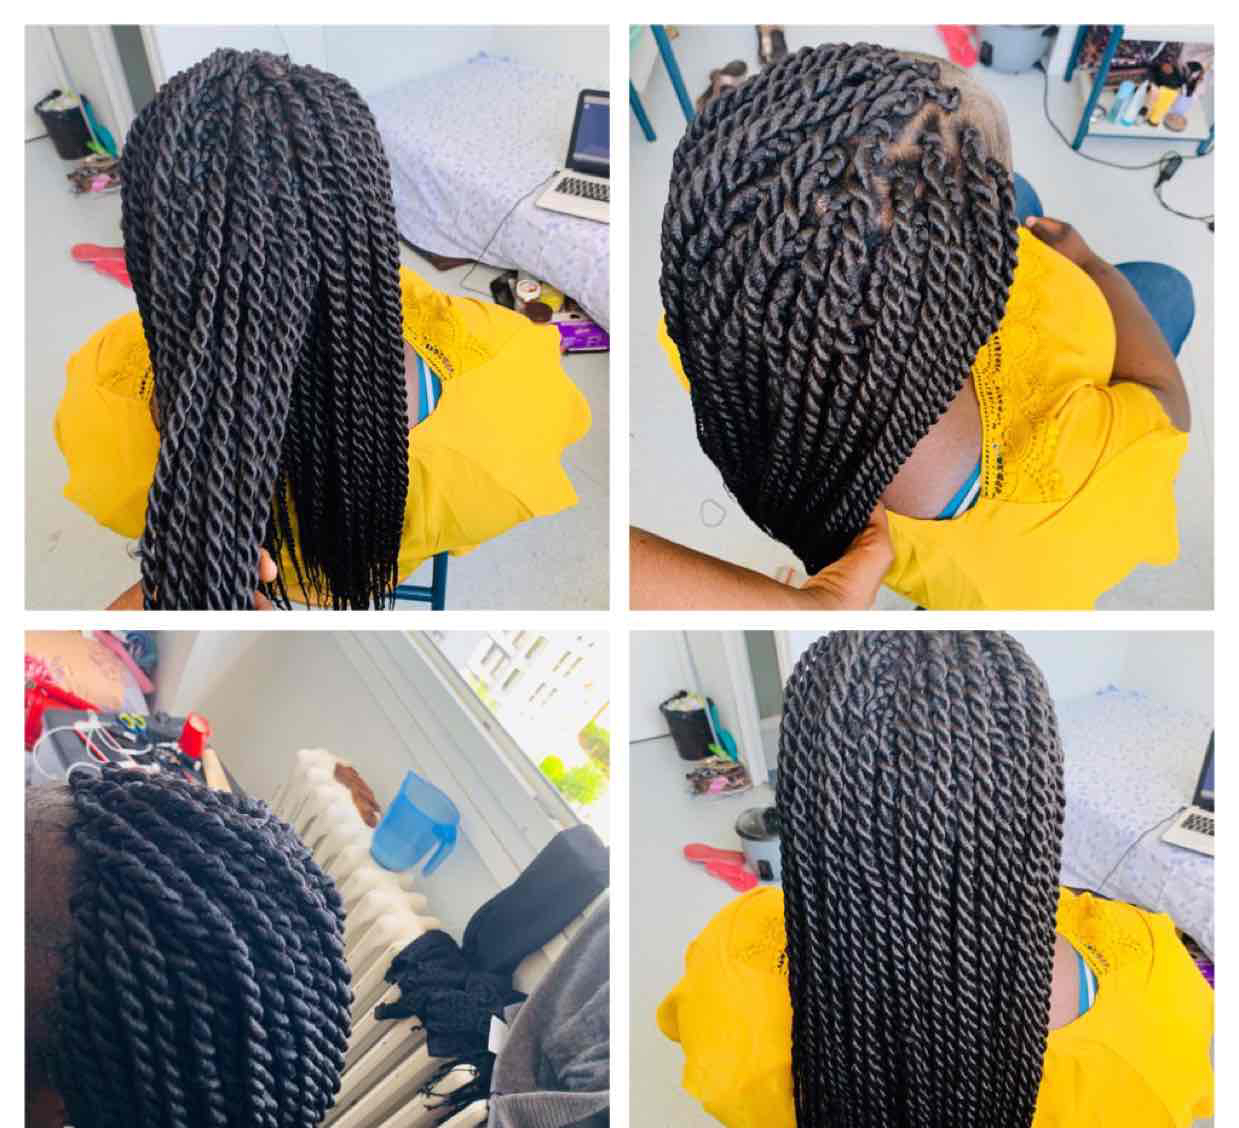 salon de coiffure afro tresse tresses box braids crochet braids vanilles tissages paris 75 77 78 91 92 93 94 95 YUAEKRDB